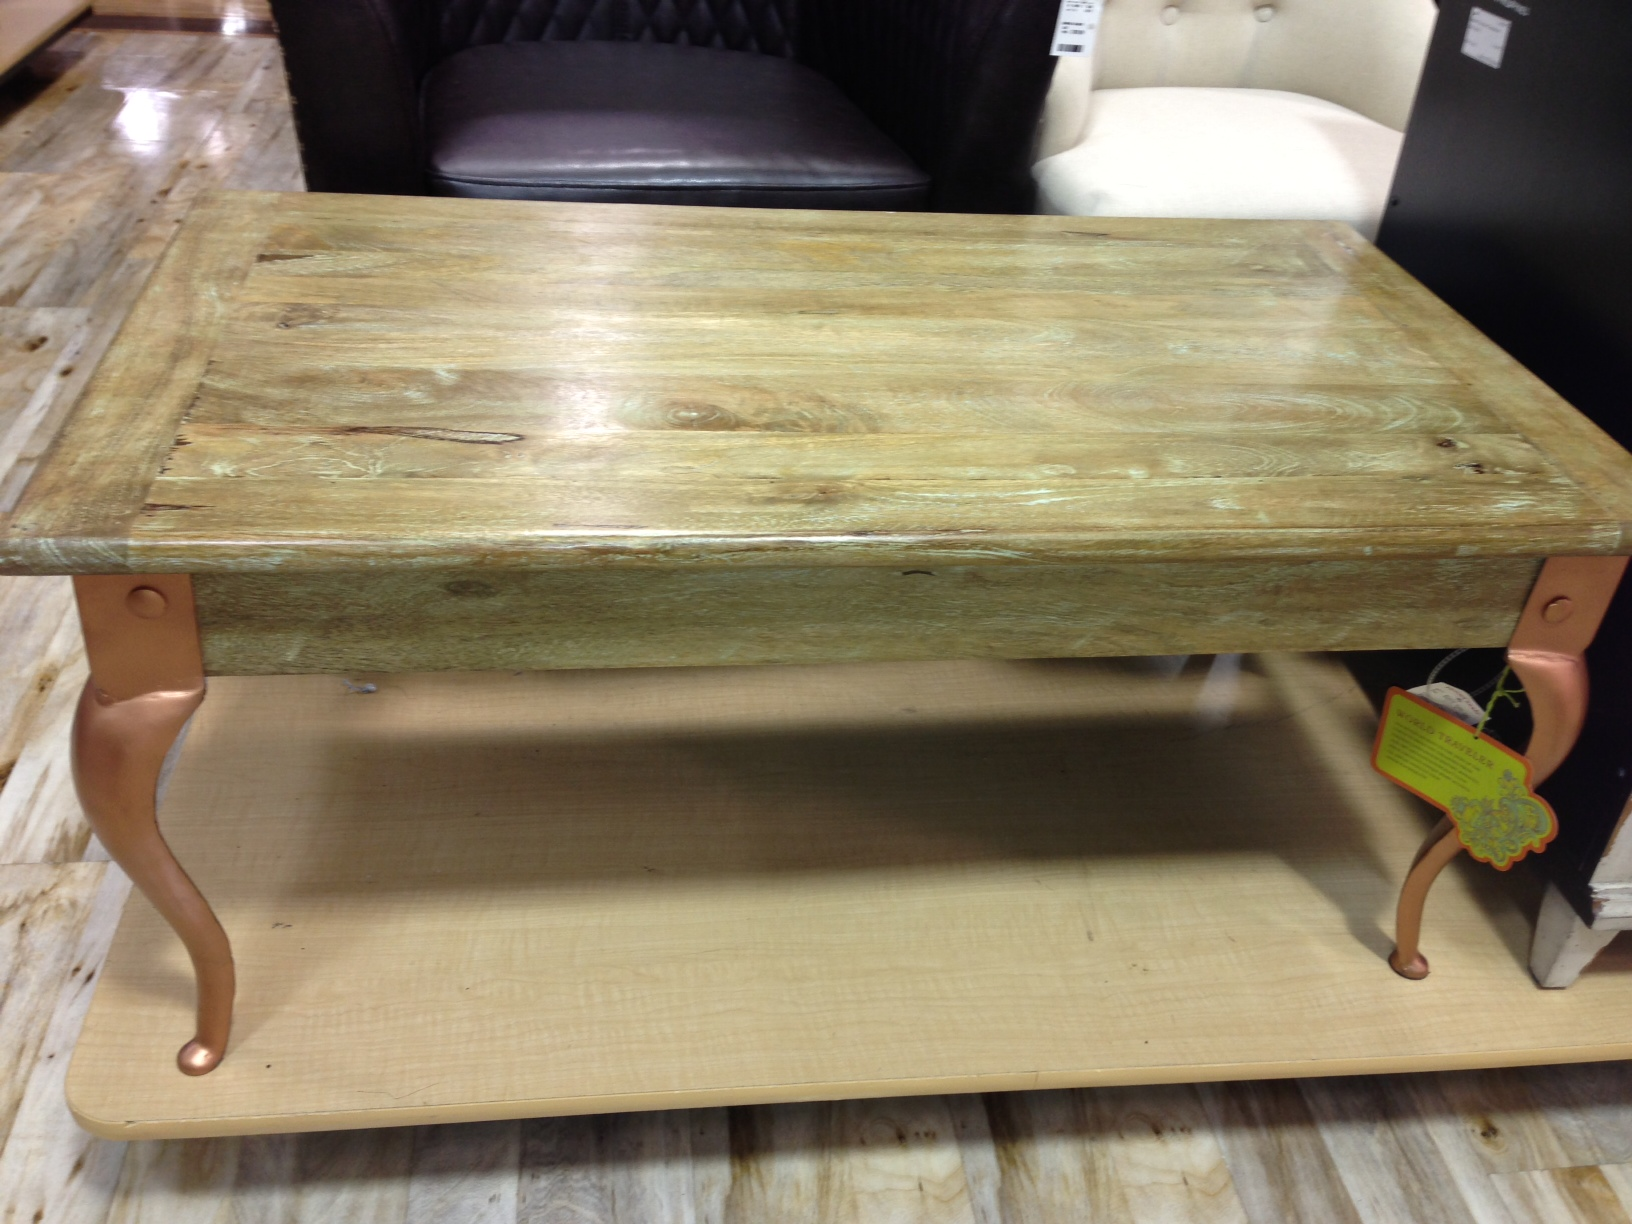 Olive green stained coffee table with copper legs Fresh Vintage NC